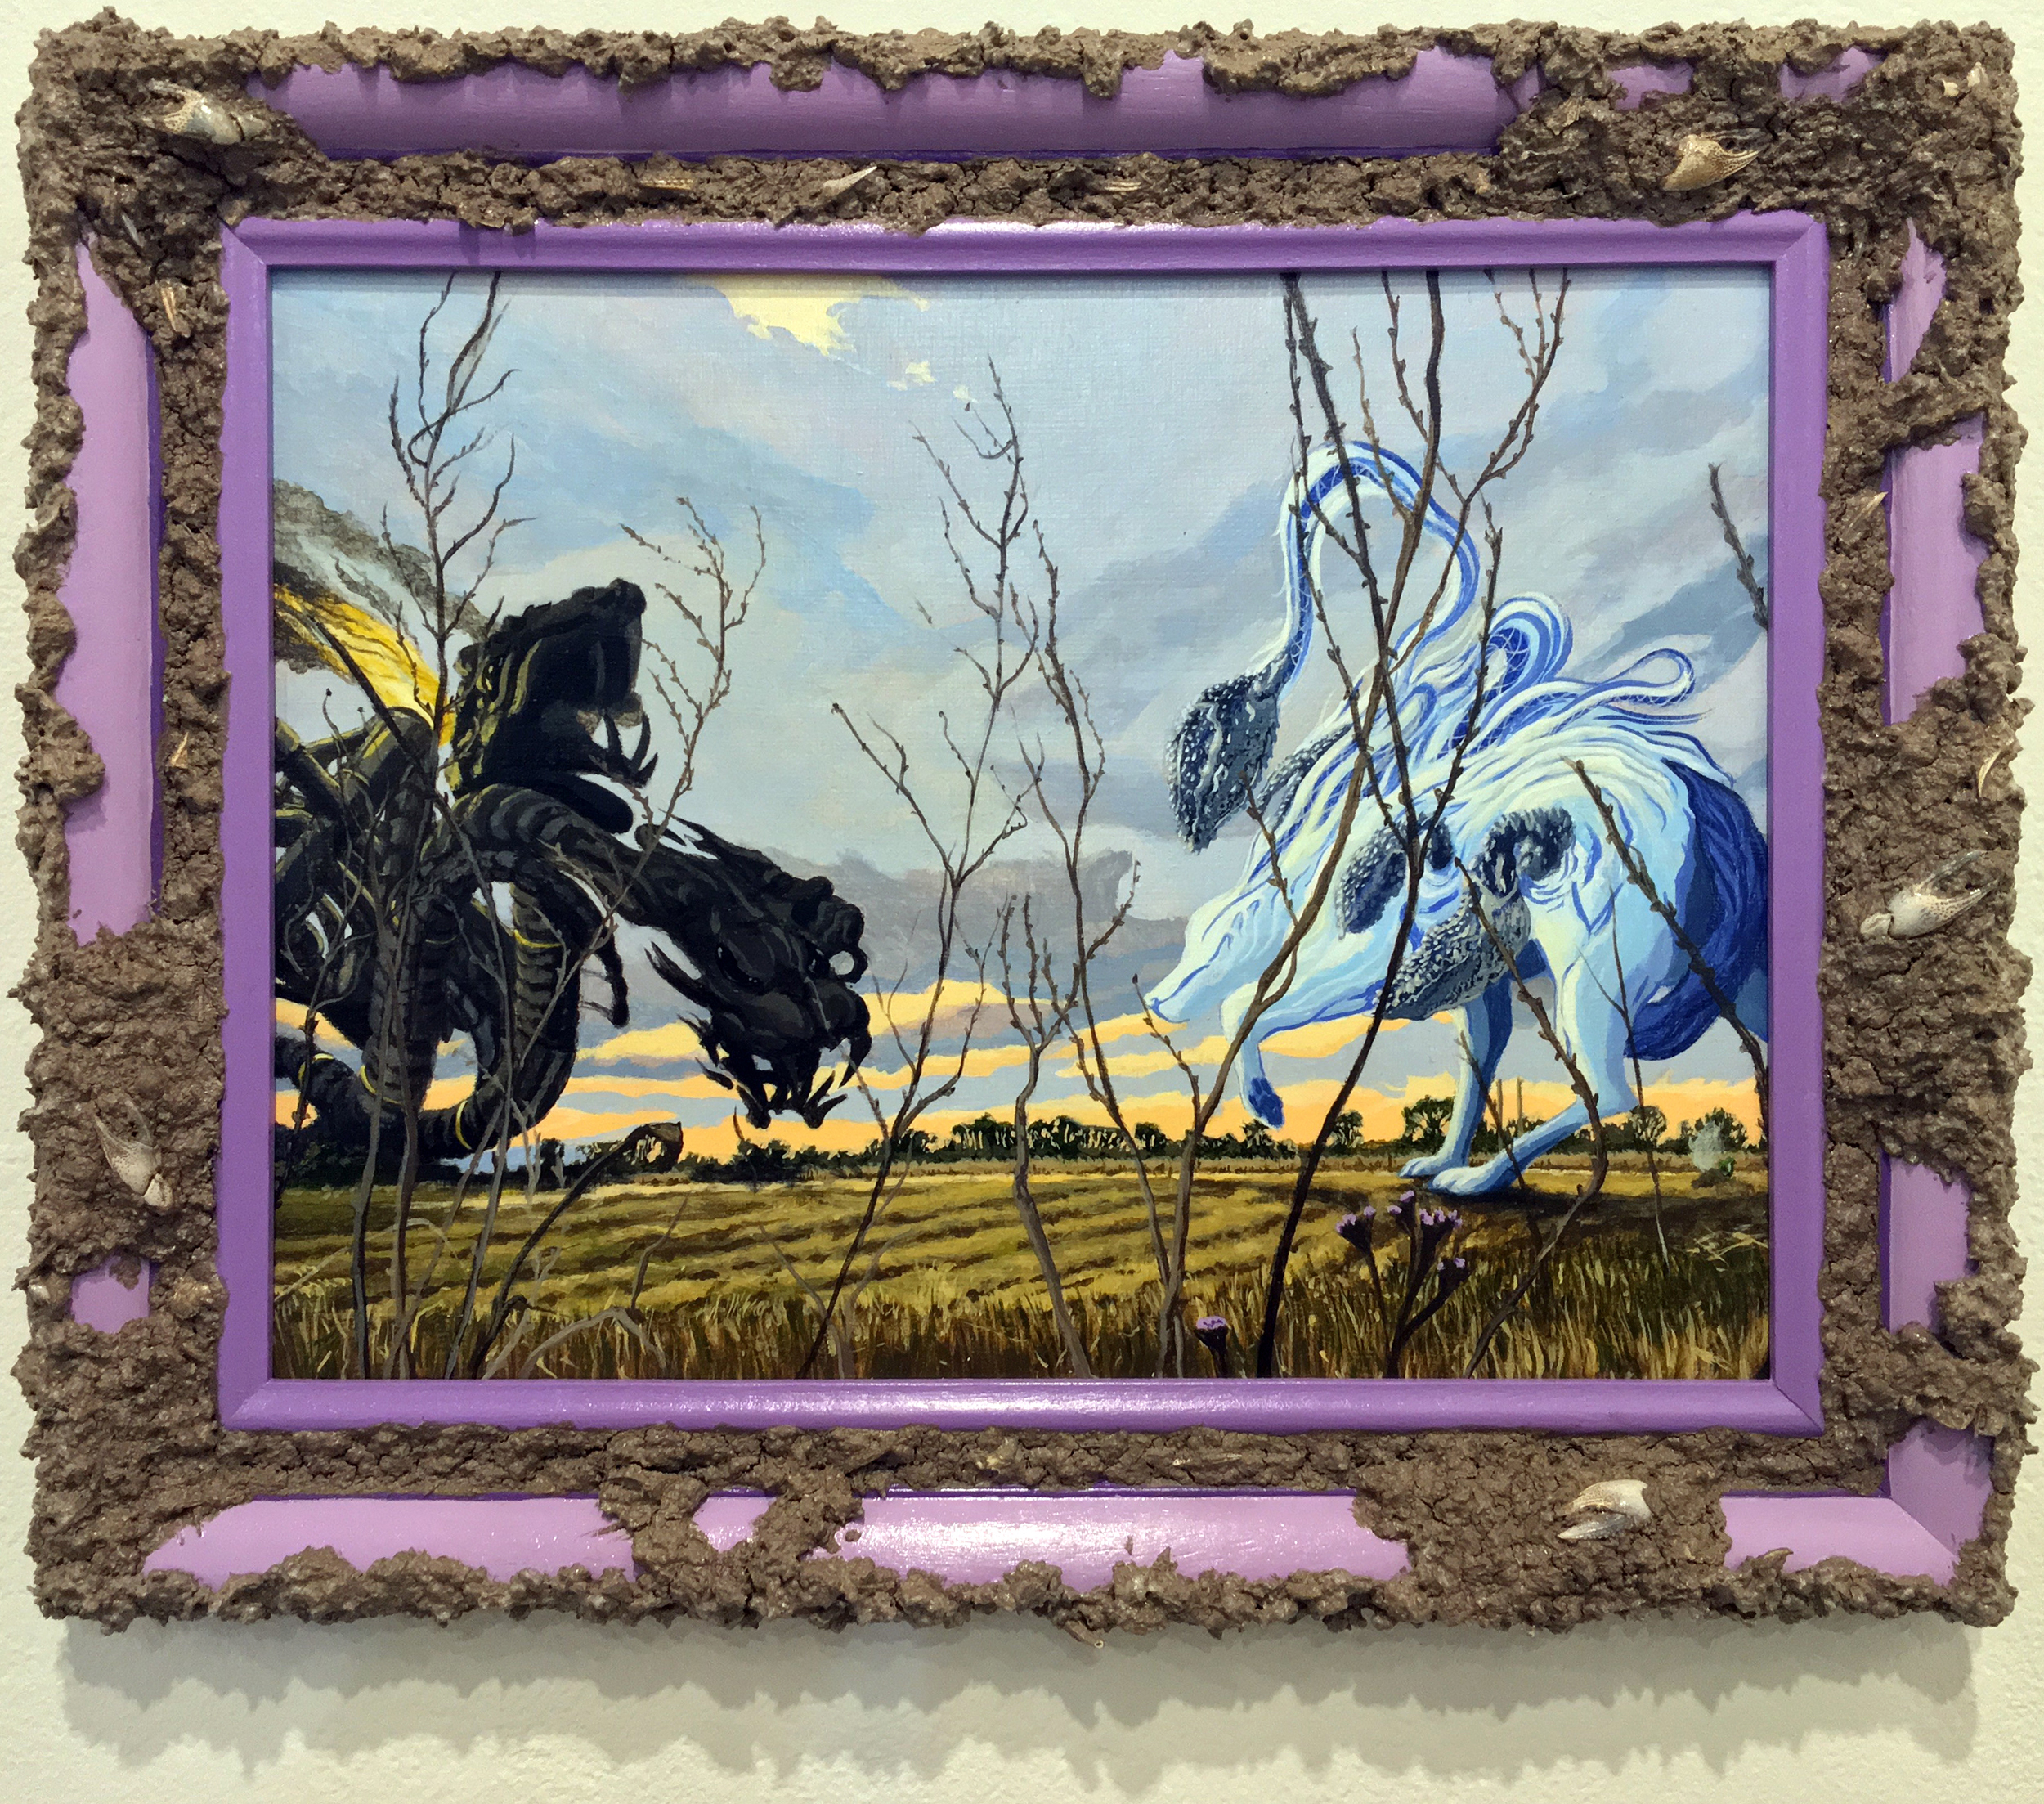 Jonathan Mayers,  La Louve blanche protégeant Rayne  (The White Wolf Protecting Rayne); acrylic, sediment and blue crawfish claws from the L'Eau est La Vie camp in Rayne, Louisiana on panel, repurposed frame; 12 x 14.5 inches; 2018; Courtesy of the artist and Arthur Roger Gallery